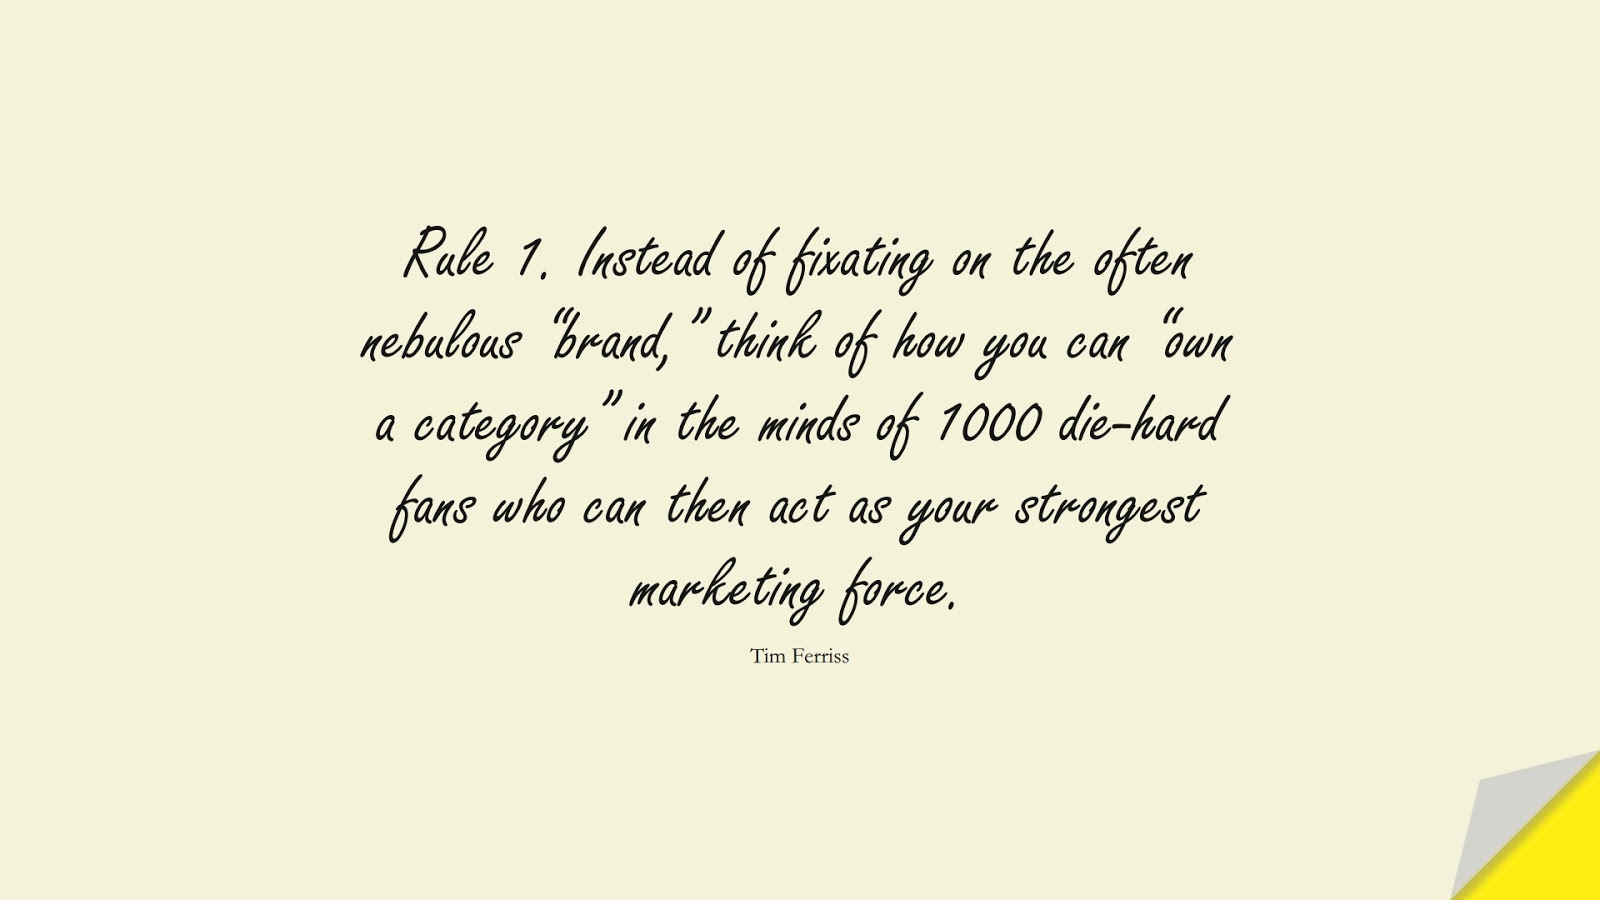 """Rule 1. Instead of fixating on the often nebulous """"brand,"""" think of how you can """"own a category"""" in the minds of 1000 die-hard fans who can then act as your strongest marketing force. (Tim Ferriss);  #TimFerrissQuotes"""